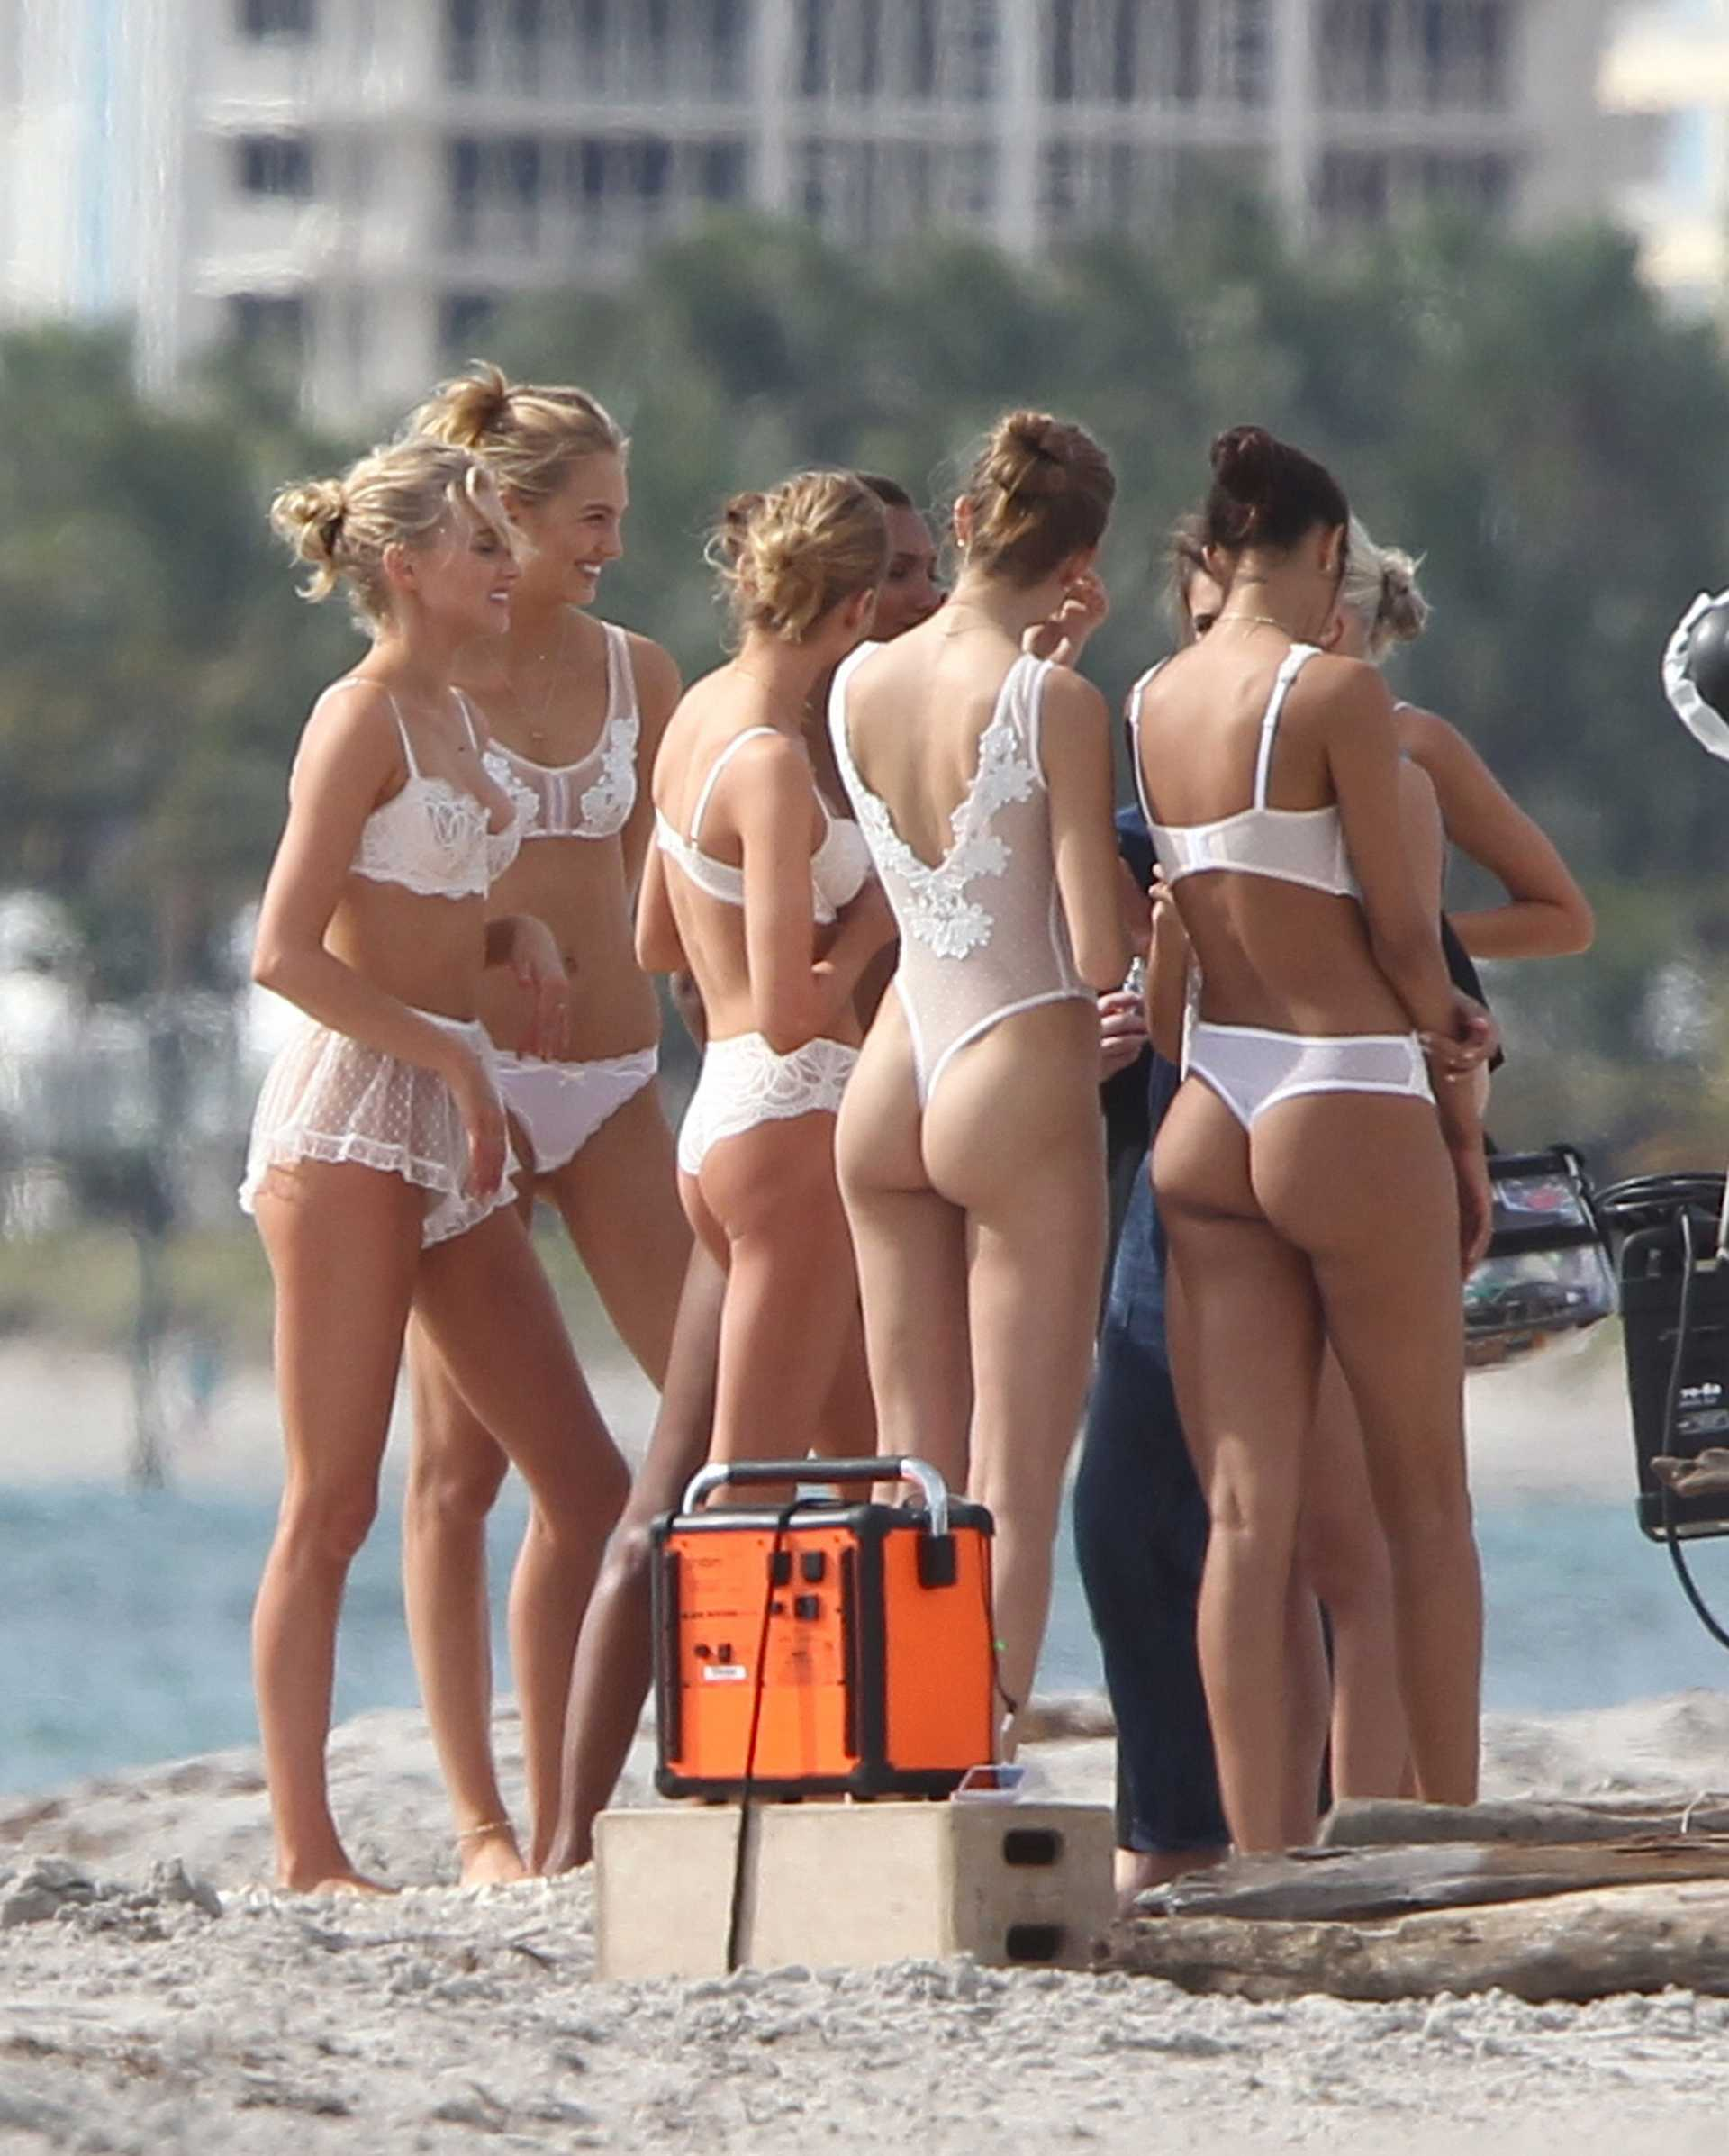 Elsa Hosk Shooting a Commercial in Miami